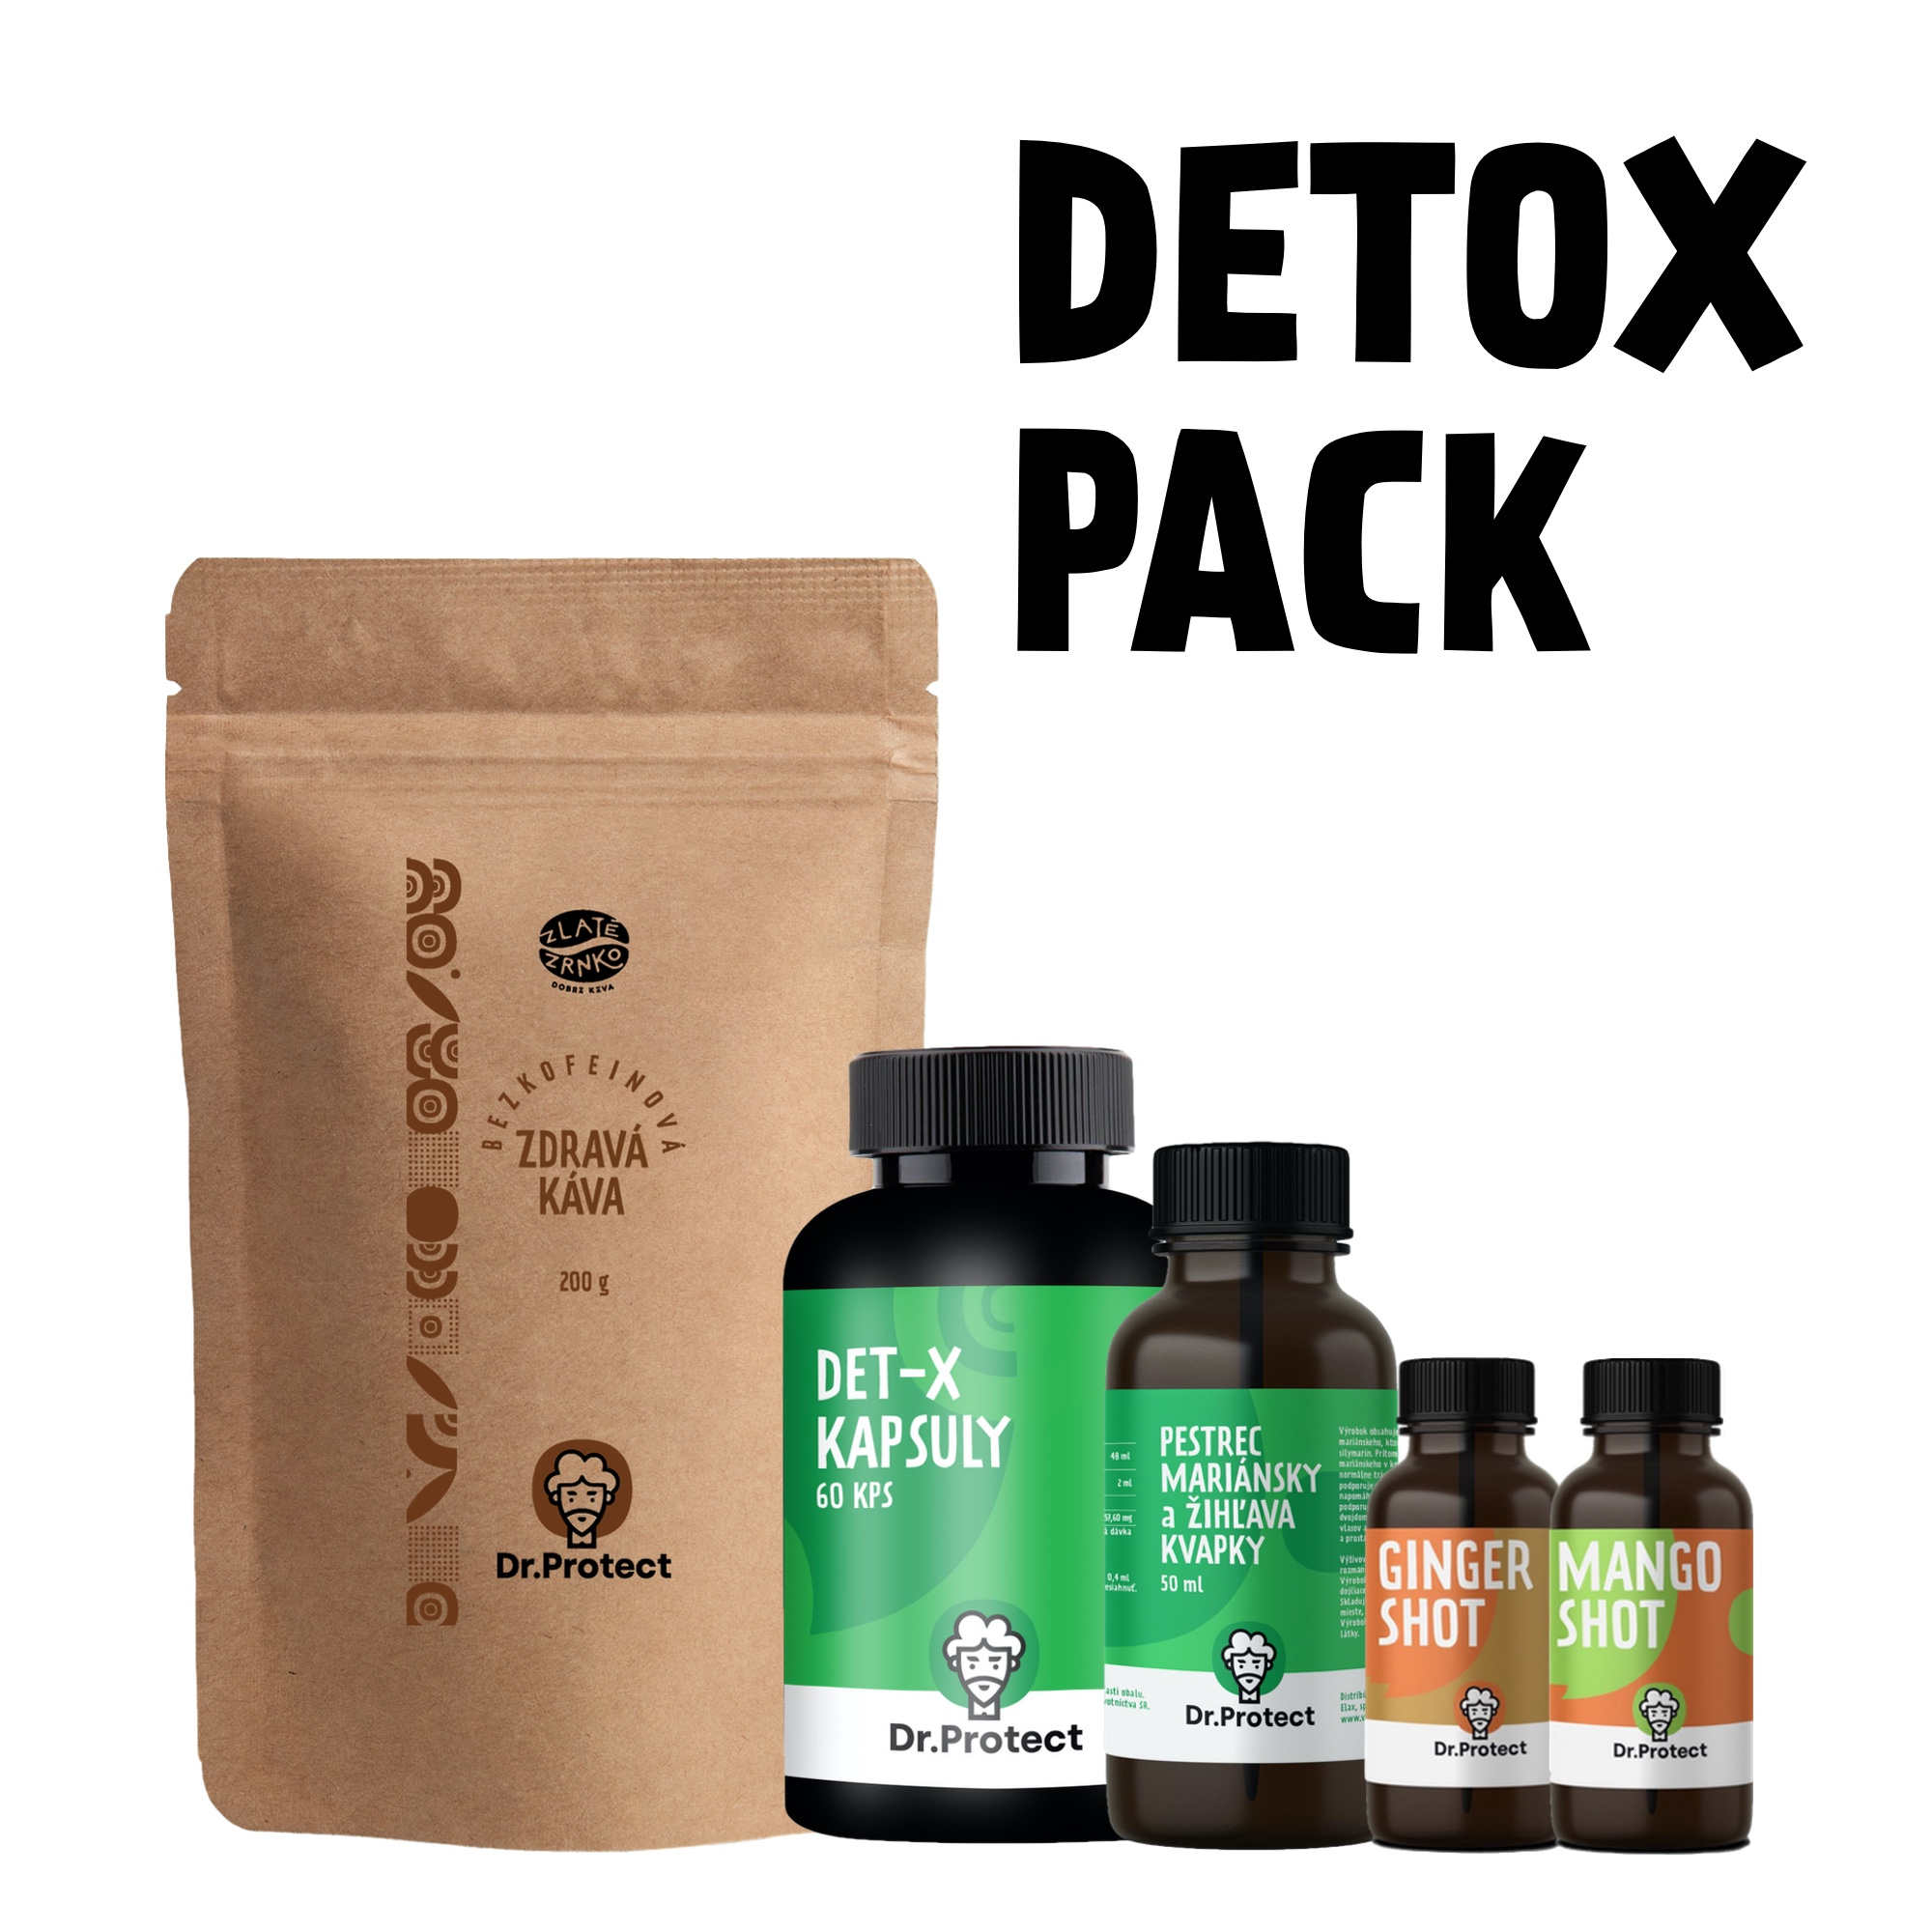 Dr.Protect Detox Pack